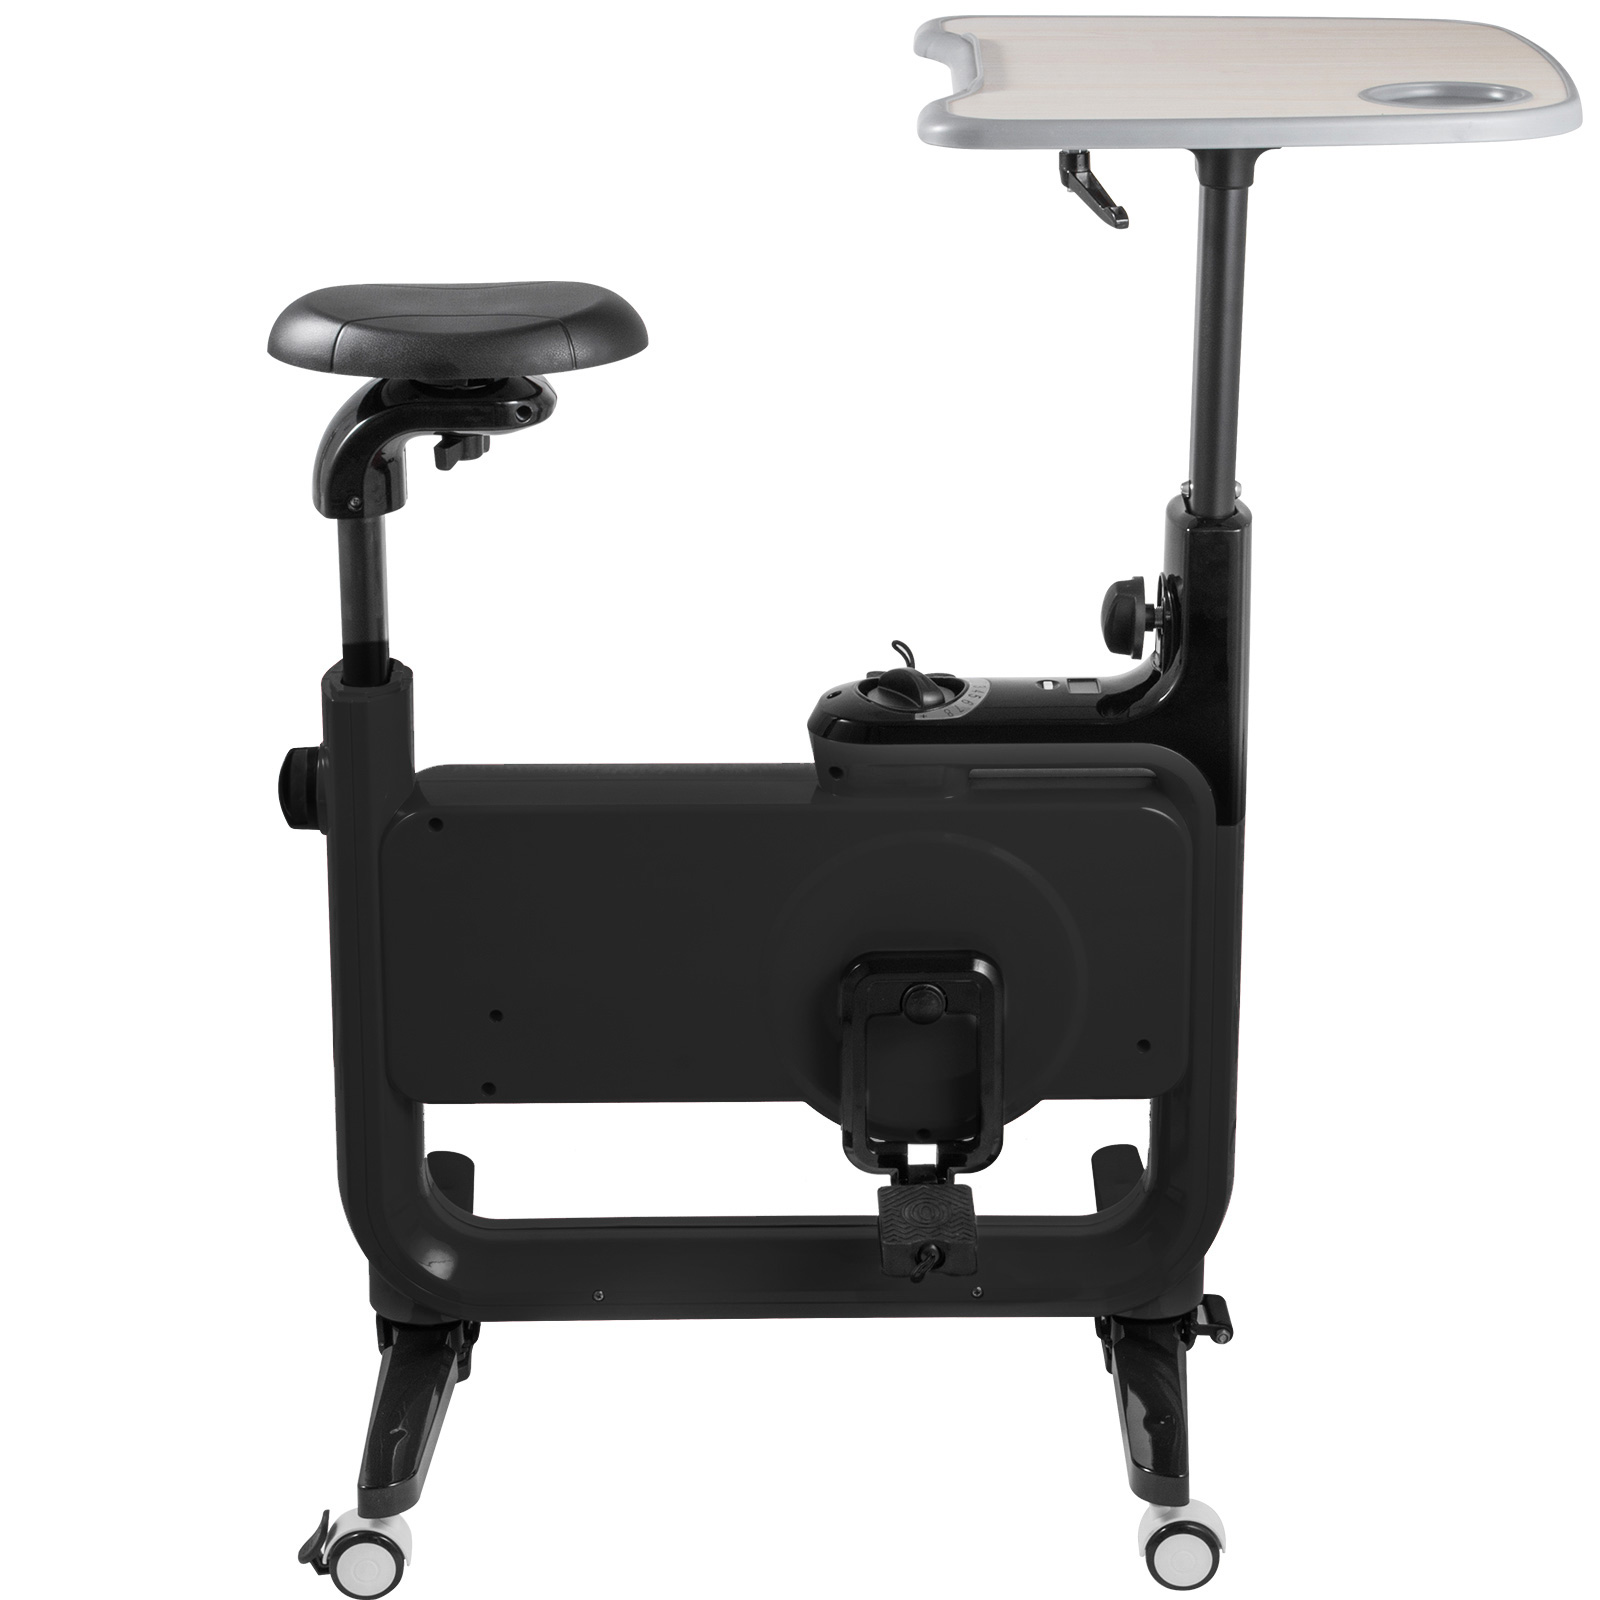 Multi-style-Magnetic-Exercise-Bike-office-Bicycle-under-Desk-Fitness-Cardio miniature 22